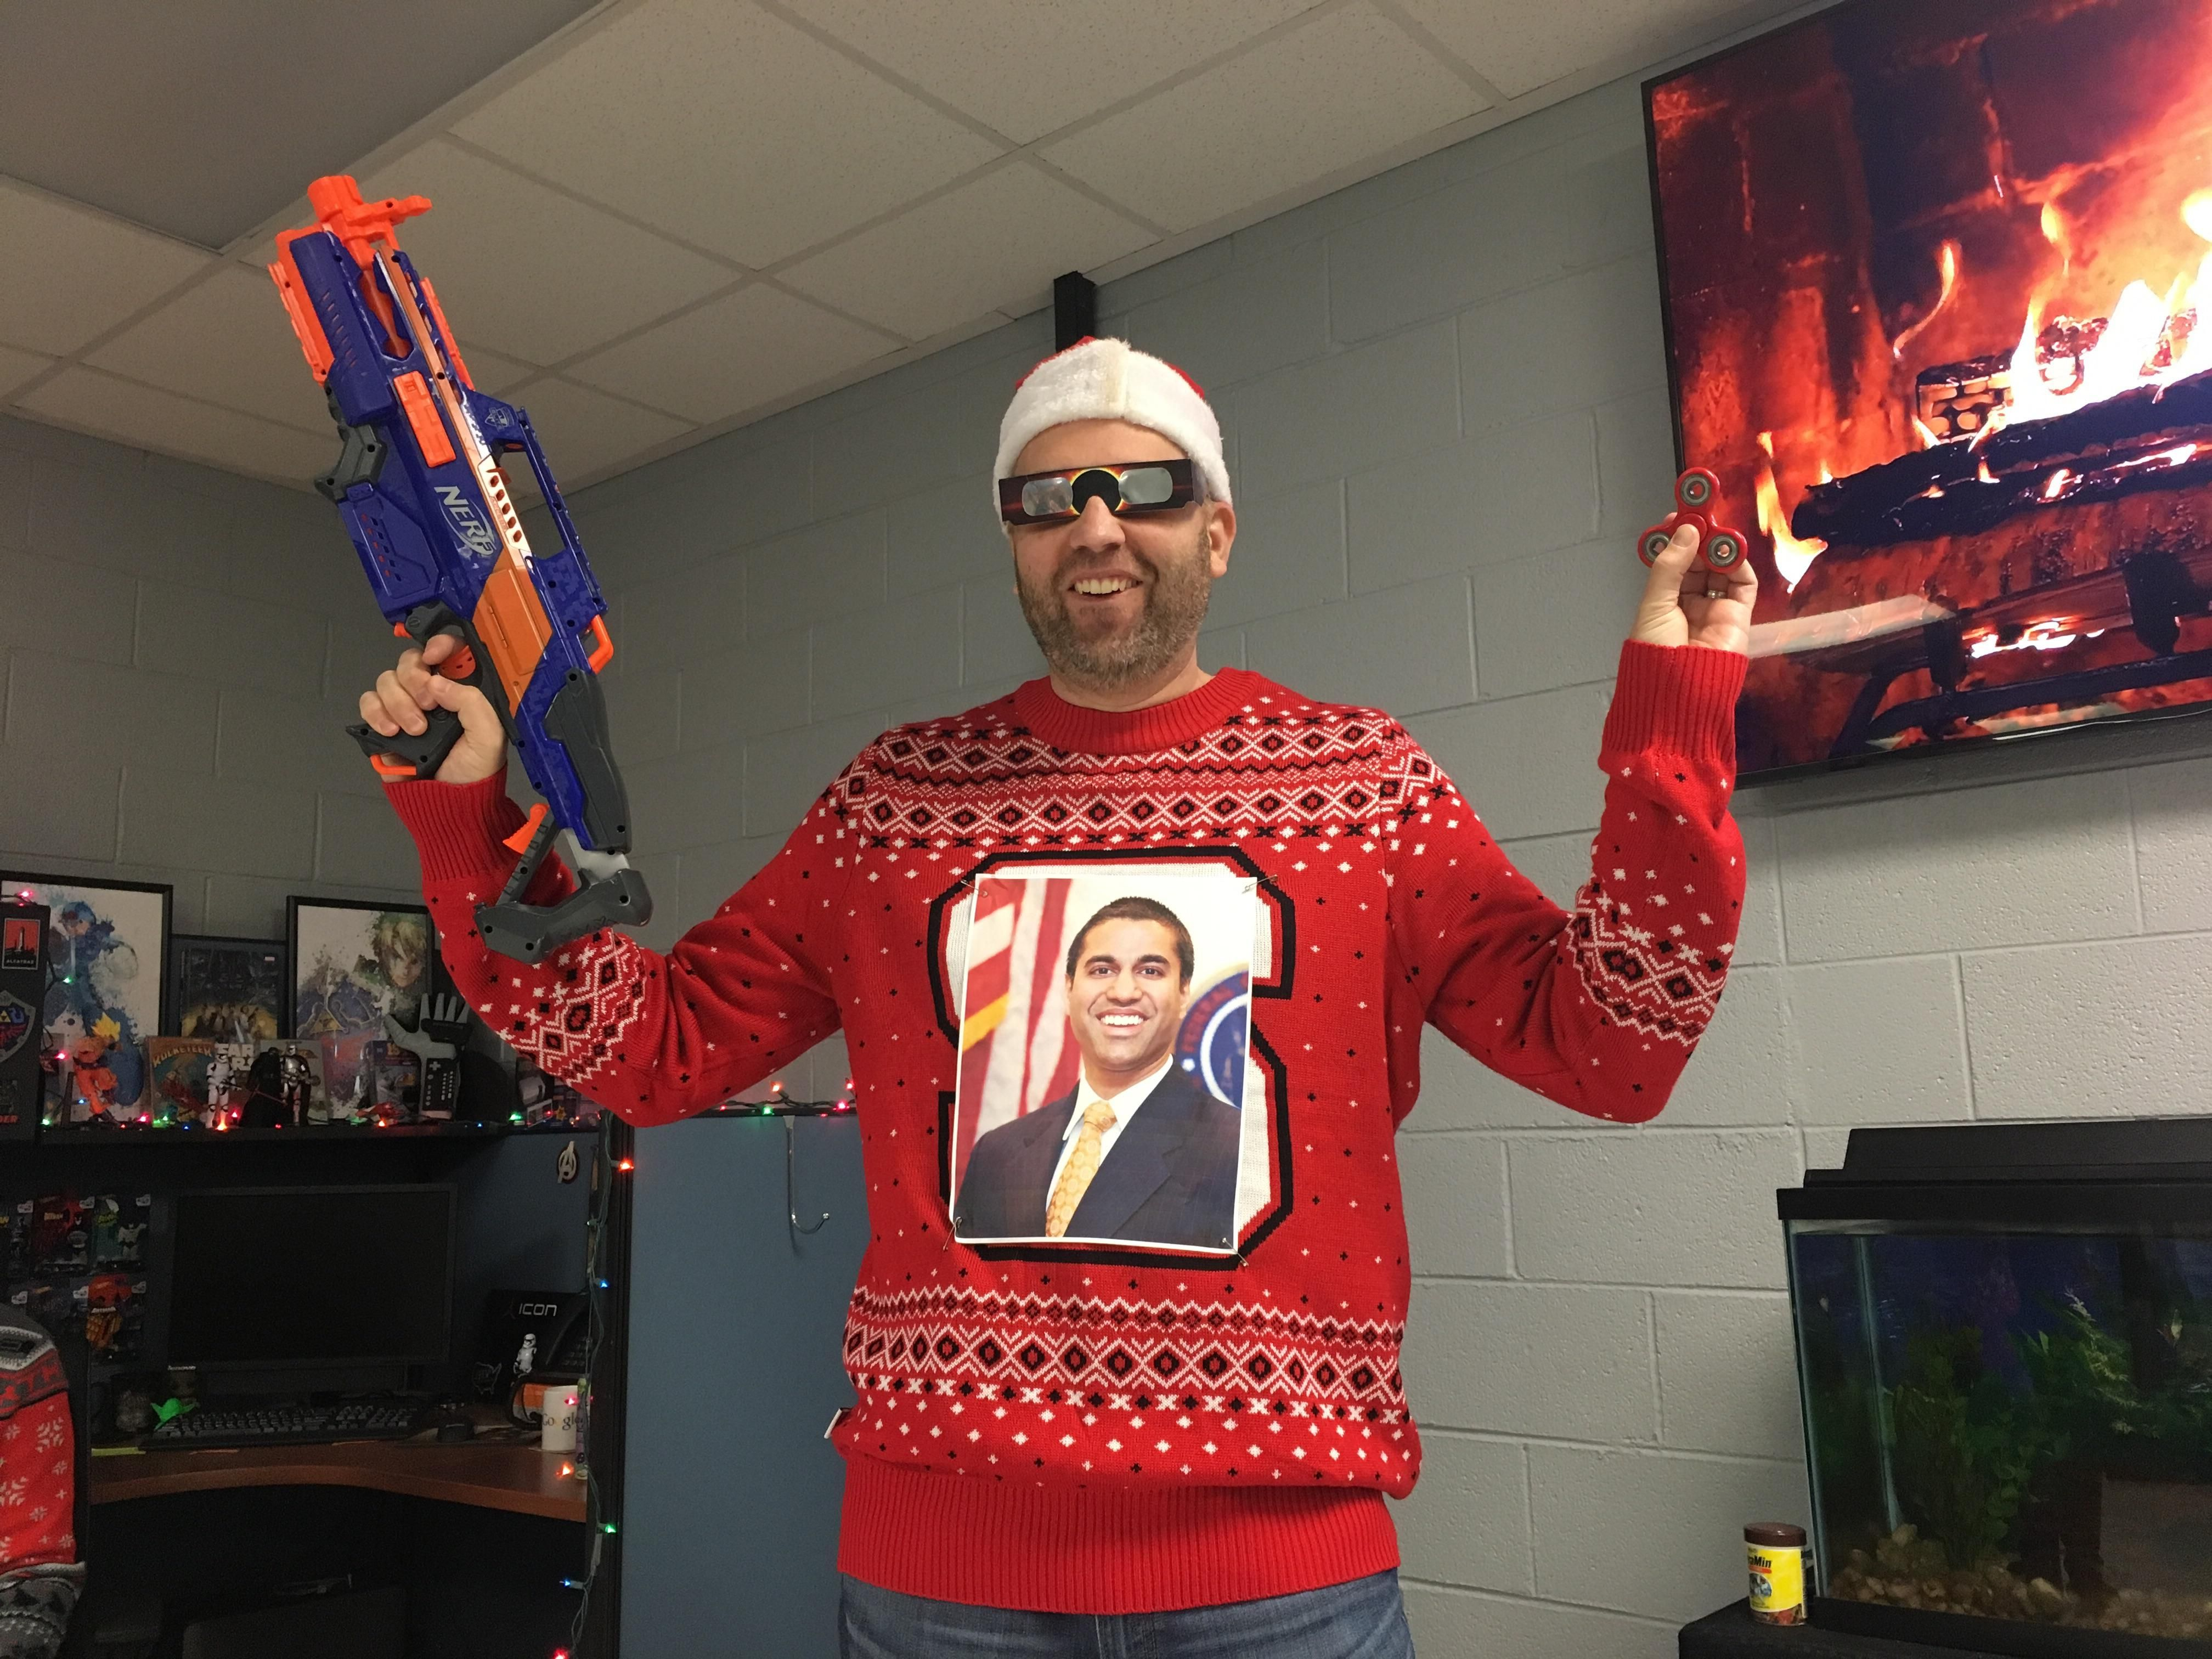 My boss wins ugly christmas sweater of the year